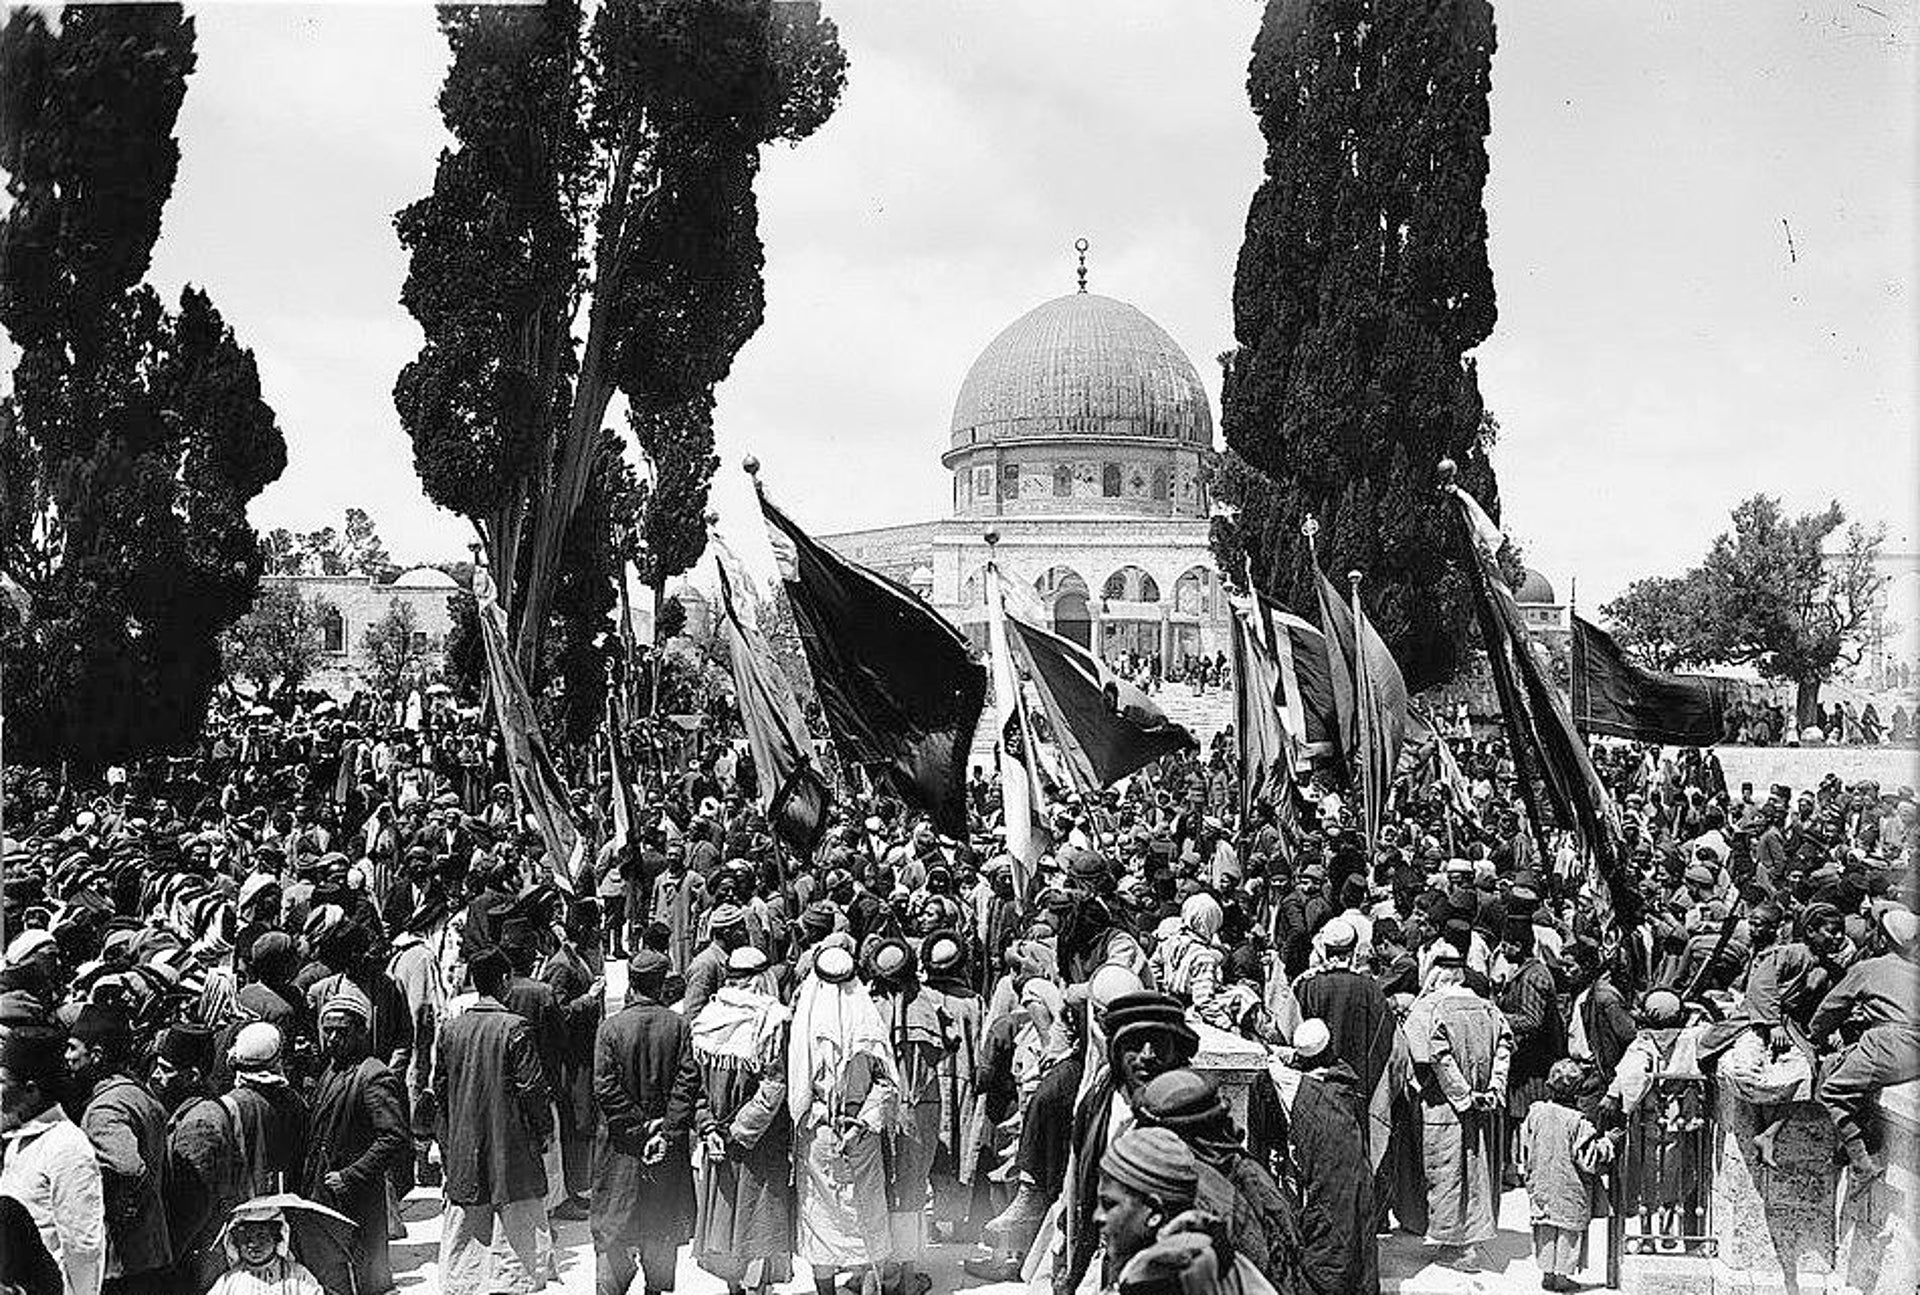 Muslims gather on Temple Mount before starting a pilgrimage to the tomb of Nabi Musa in 1918.